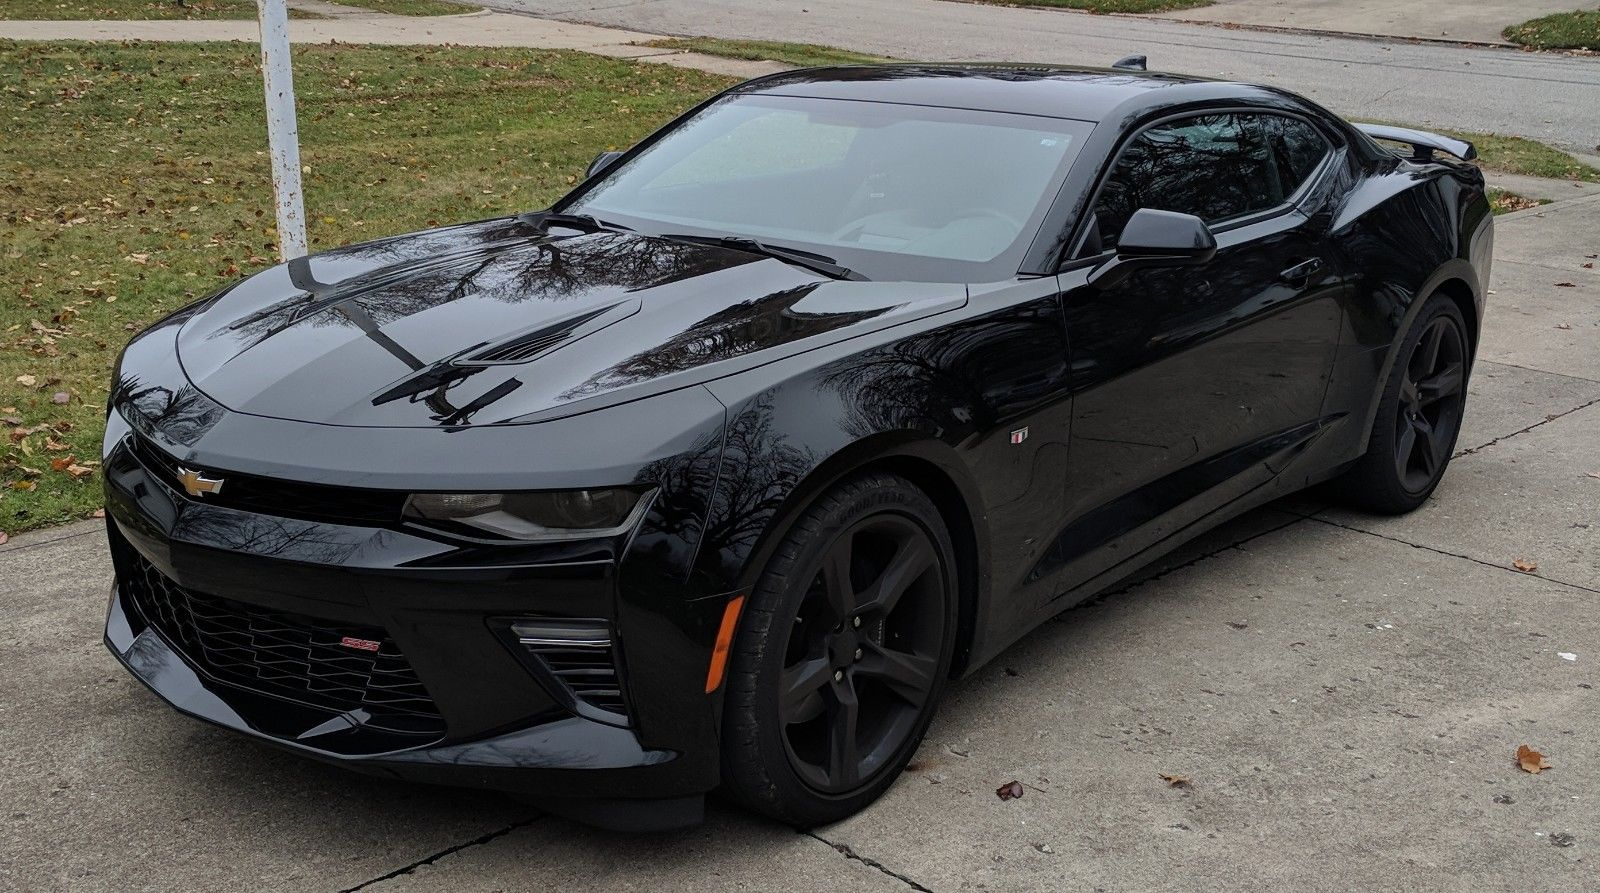 amazing 2016 chevrolet camaro 2ss 2016 chevrolet camaro 2ss black 6500 miles chevy v8 auto. Black Bedroom Furniture Sets. Home Design Ideas